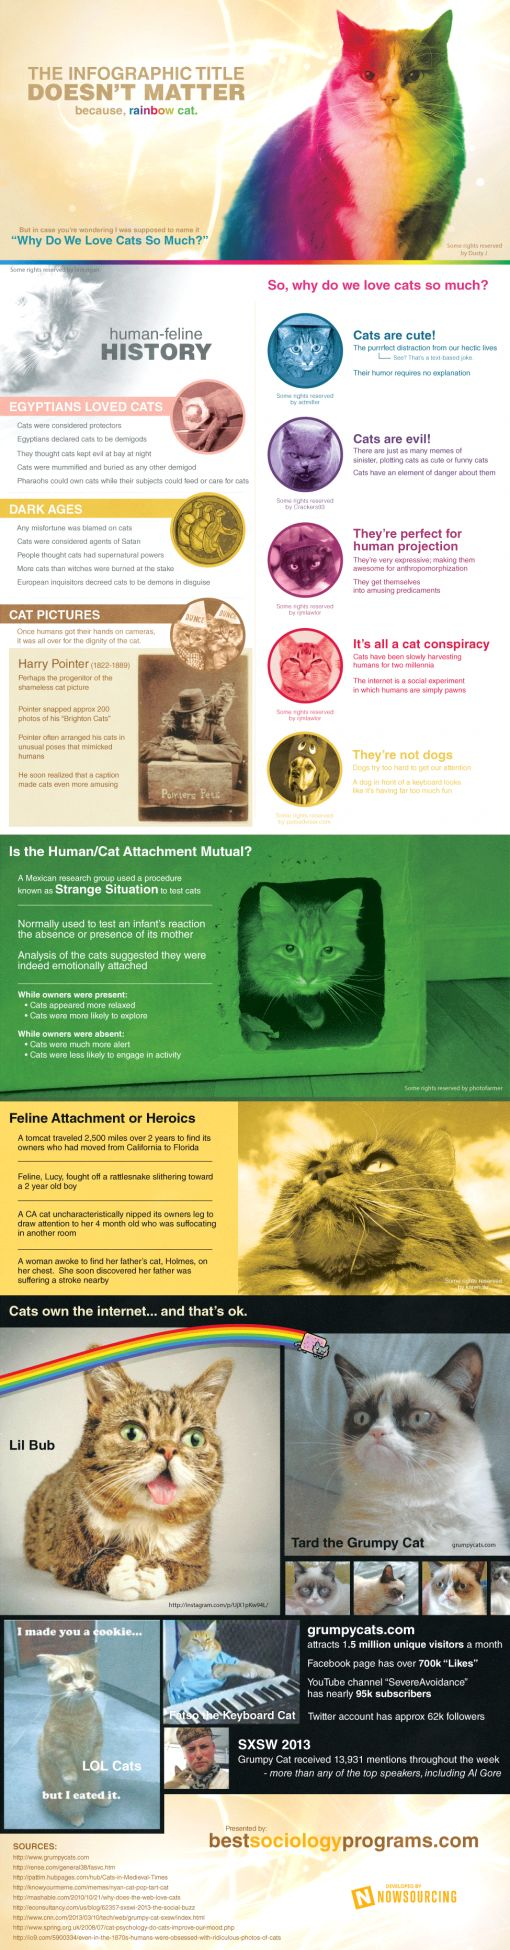 cats-infographic